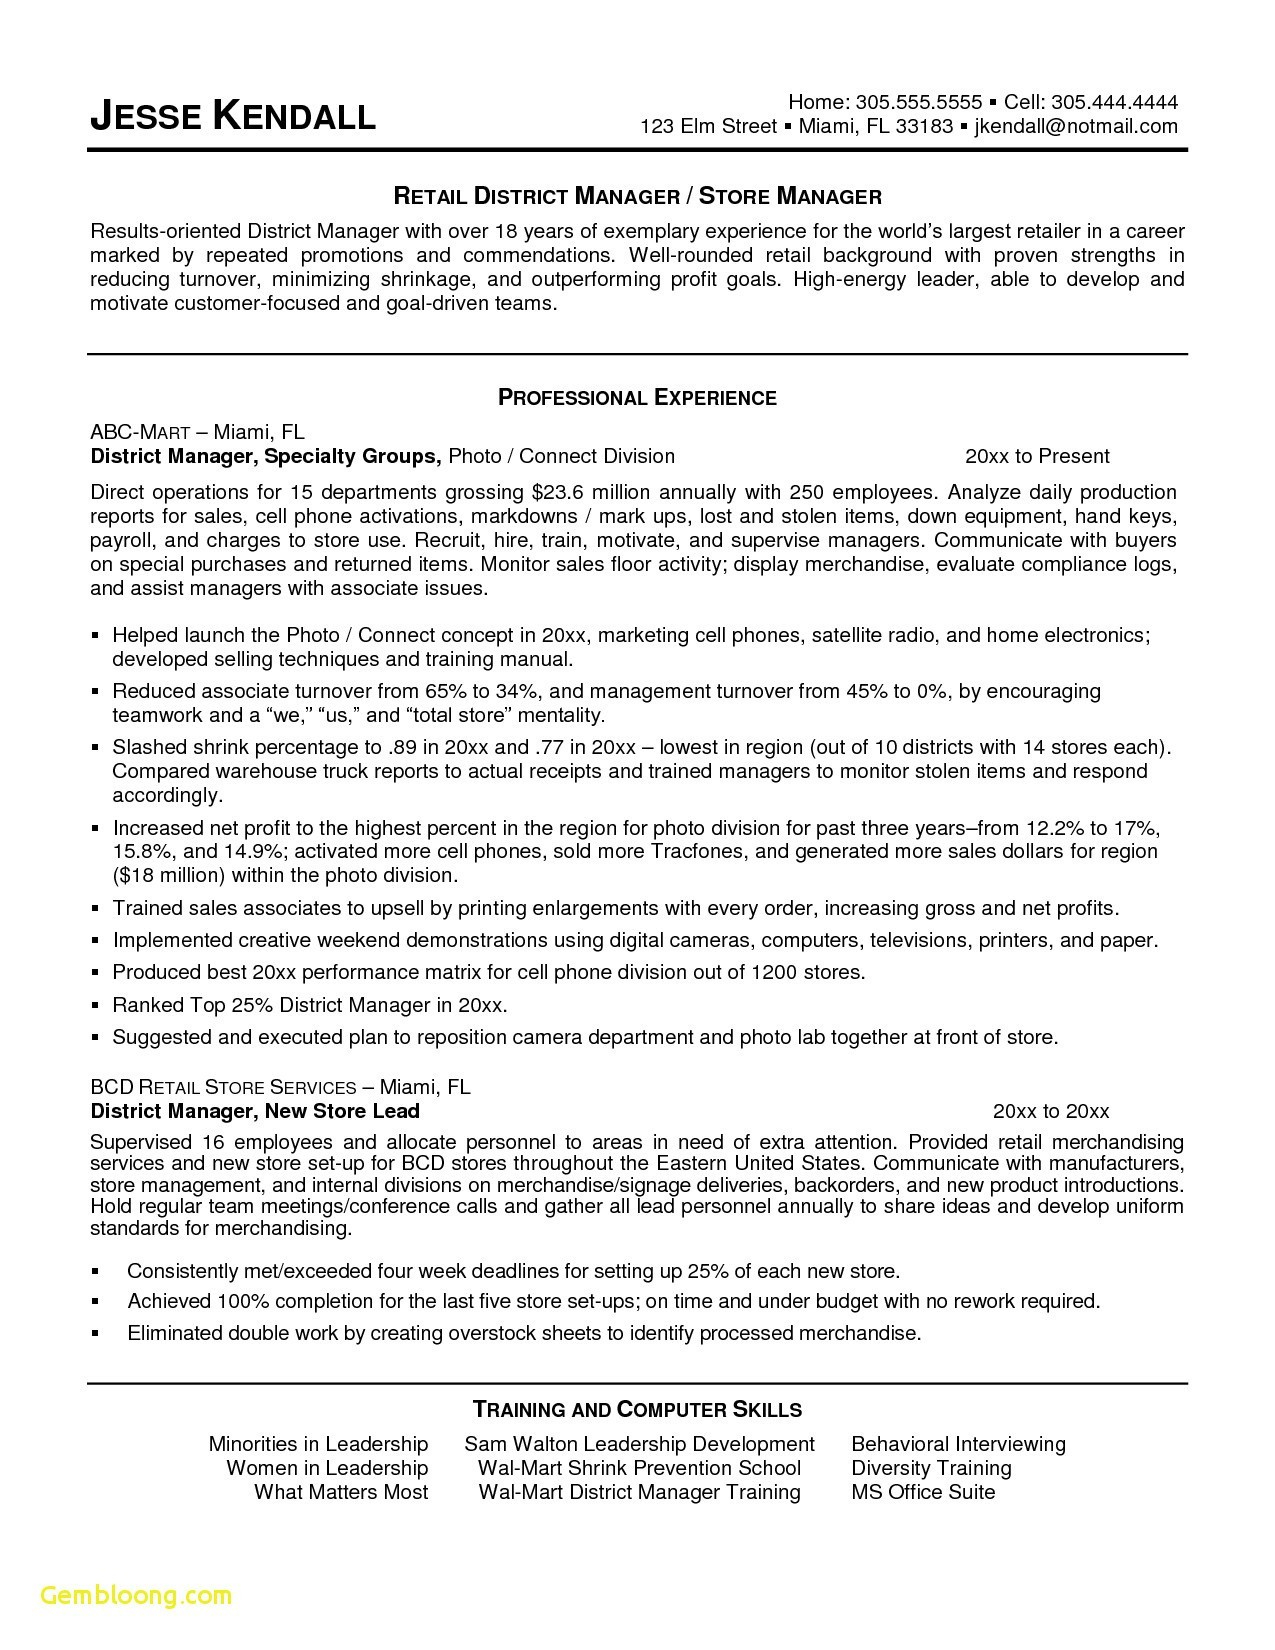 Director Resume Template - Customer Service Manager Resume Unique Fresh Grapher Resume Sample